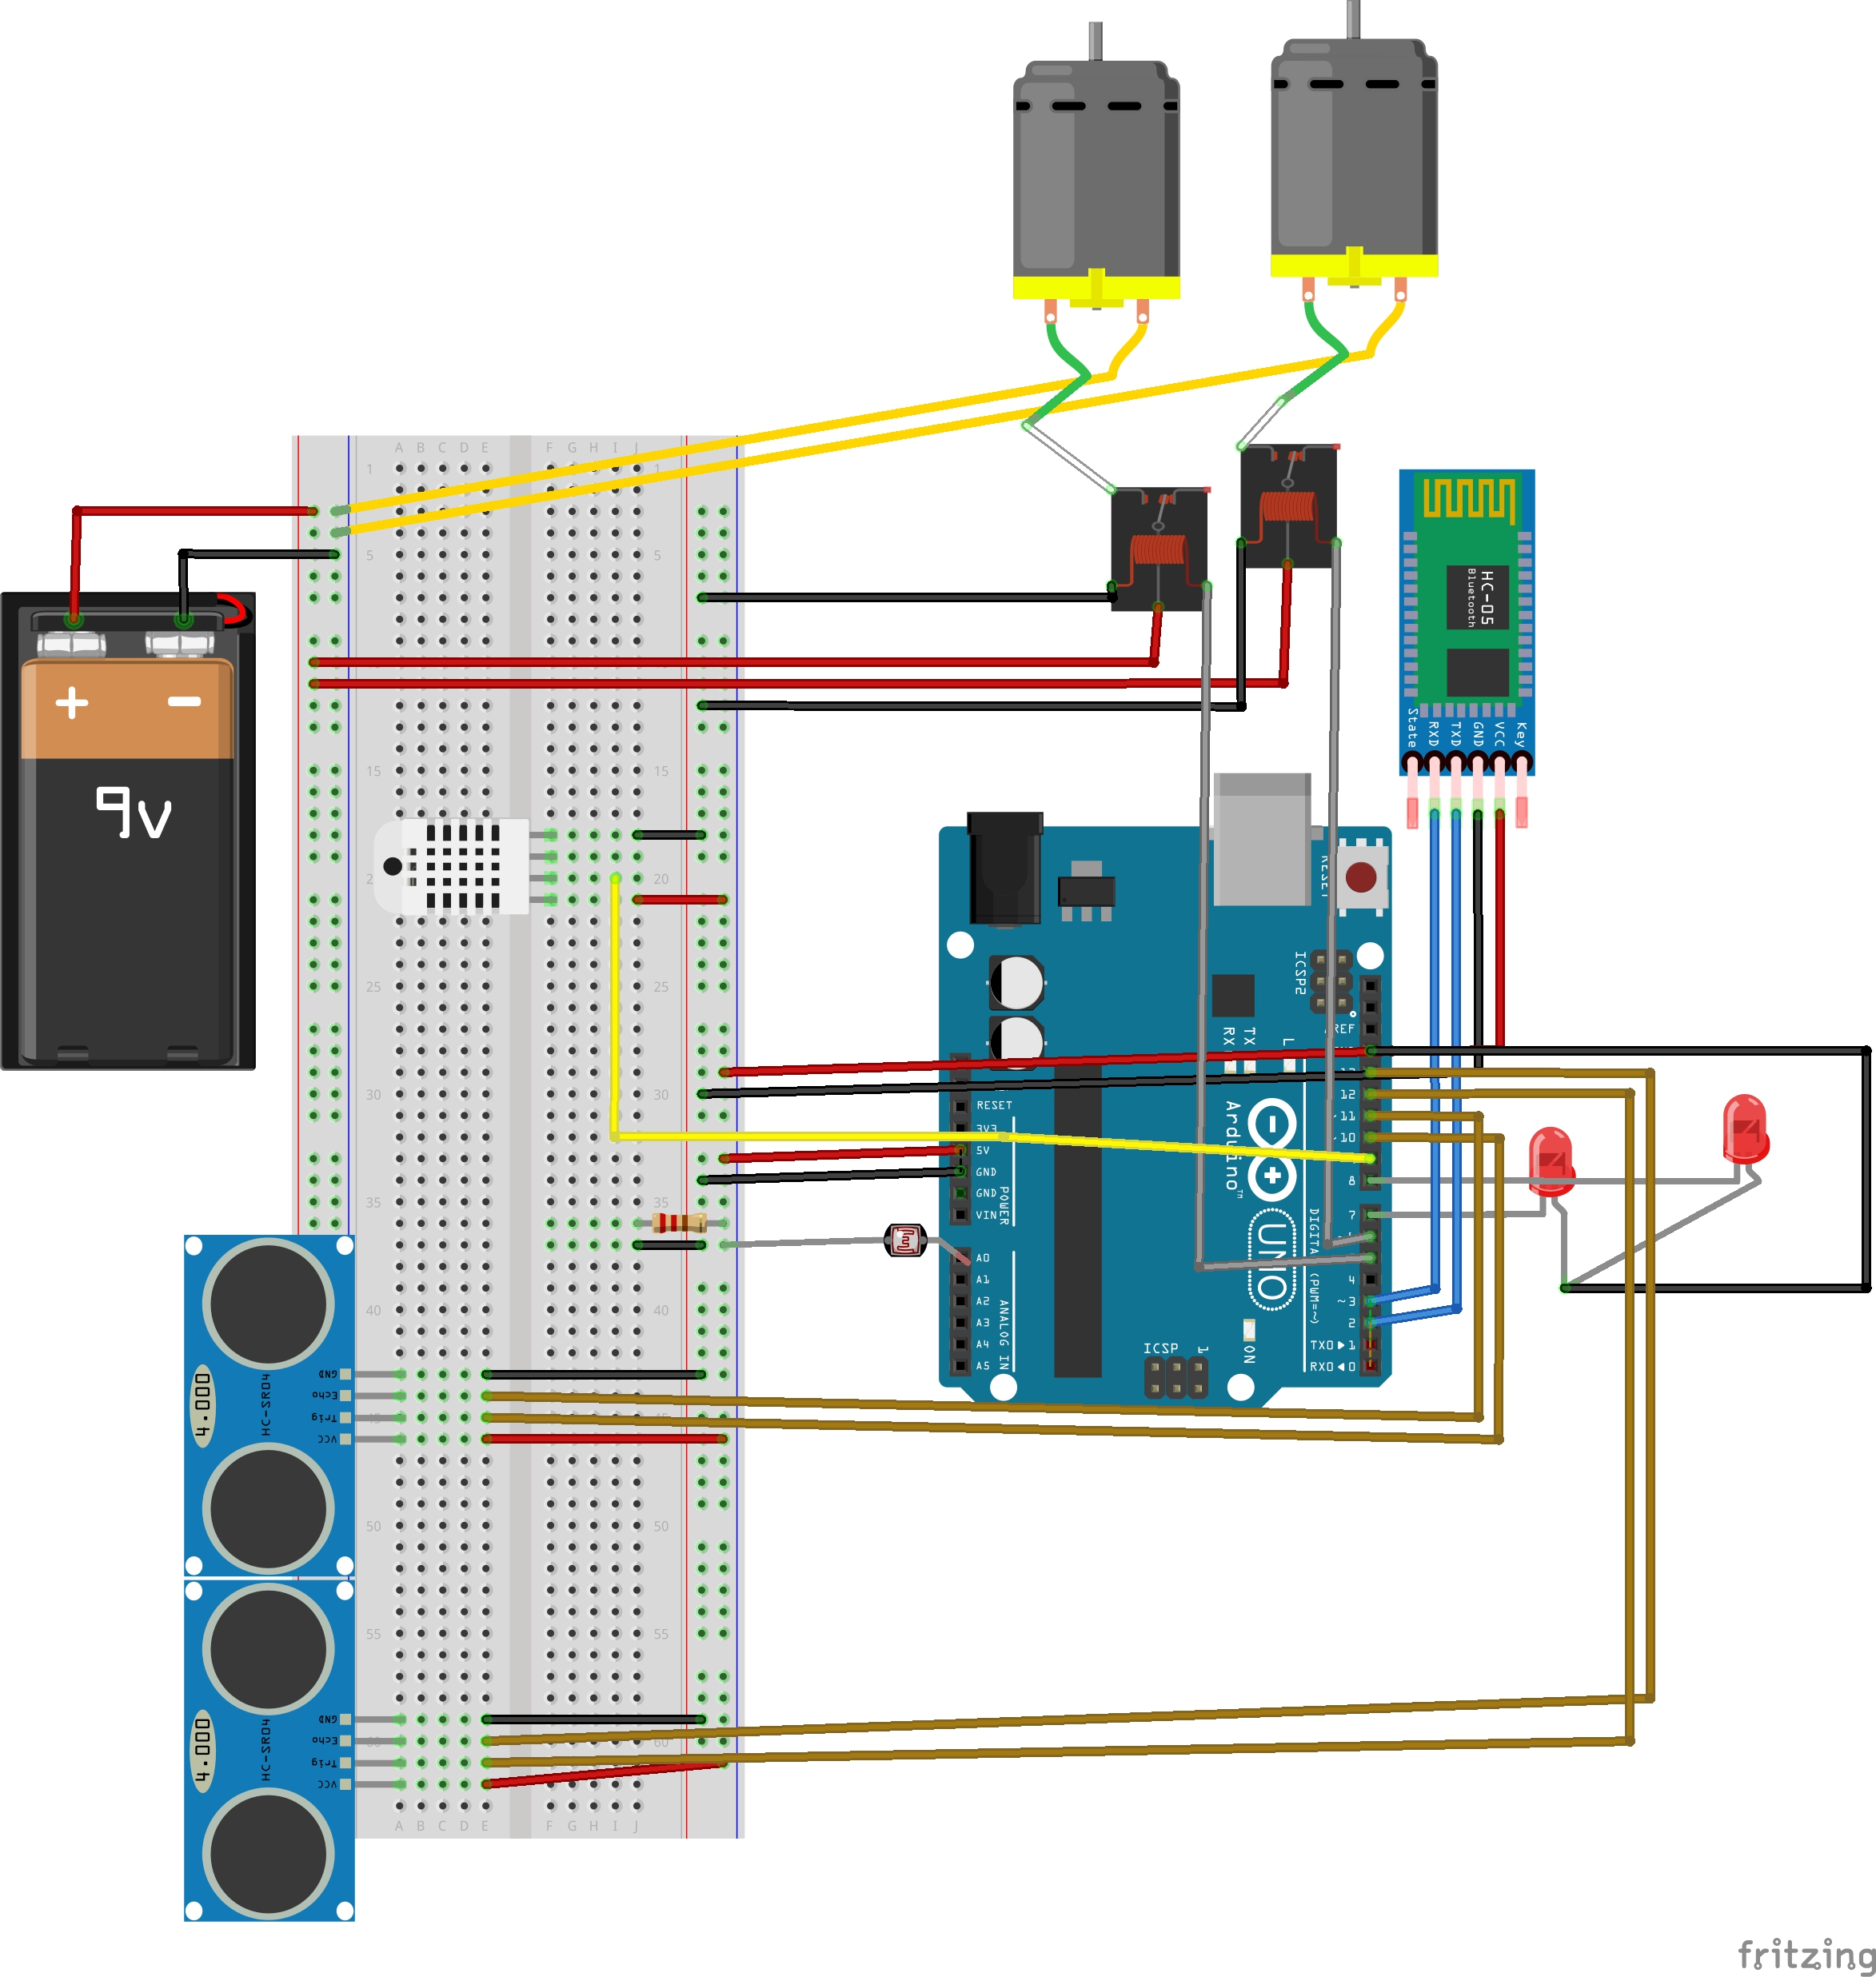 Uploads2ftmp2fe35f5af1 78e6 4aa0 8d05 de0bc64317cc2fhomeautomation wlsywz3ngw